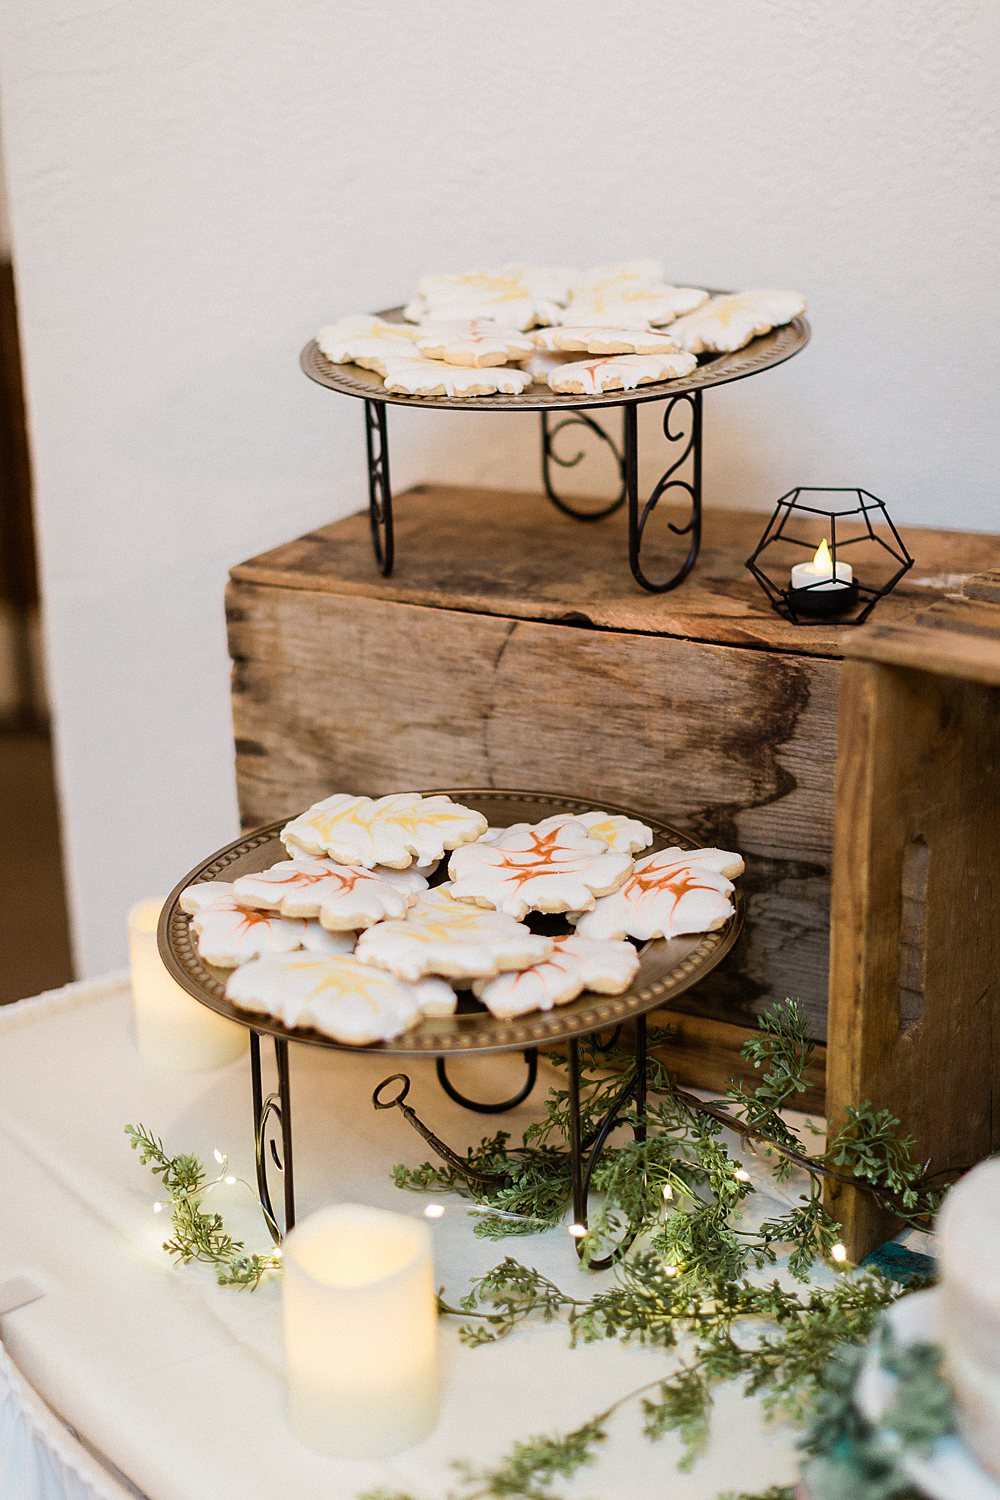 North_Central_Wisconsin_Event_Wedding_Venues_Fall_Weddings_The_Bailiwick_Venue_James-Stokes-Photography058.jpg